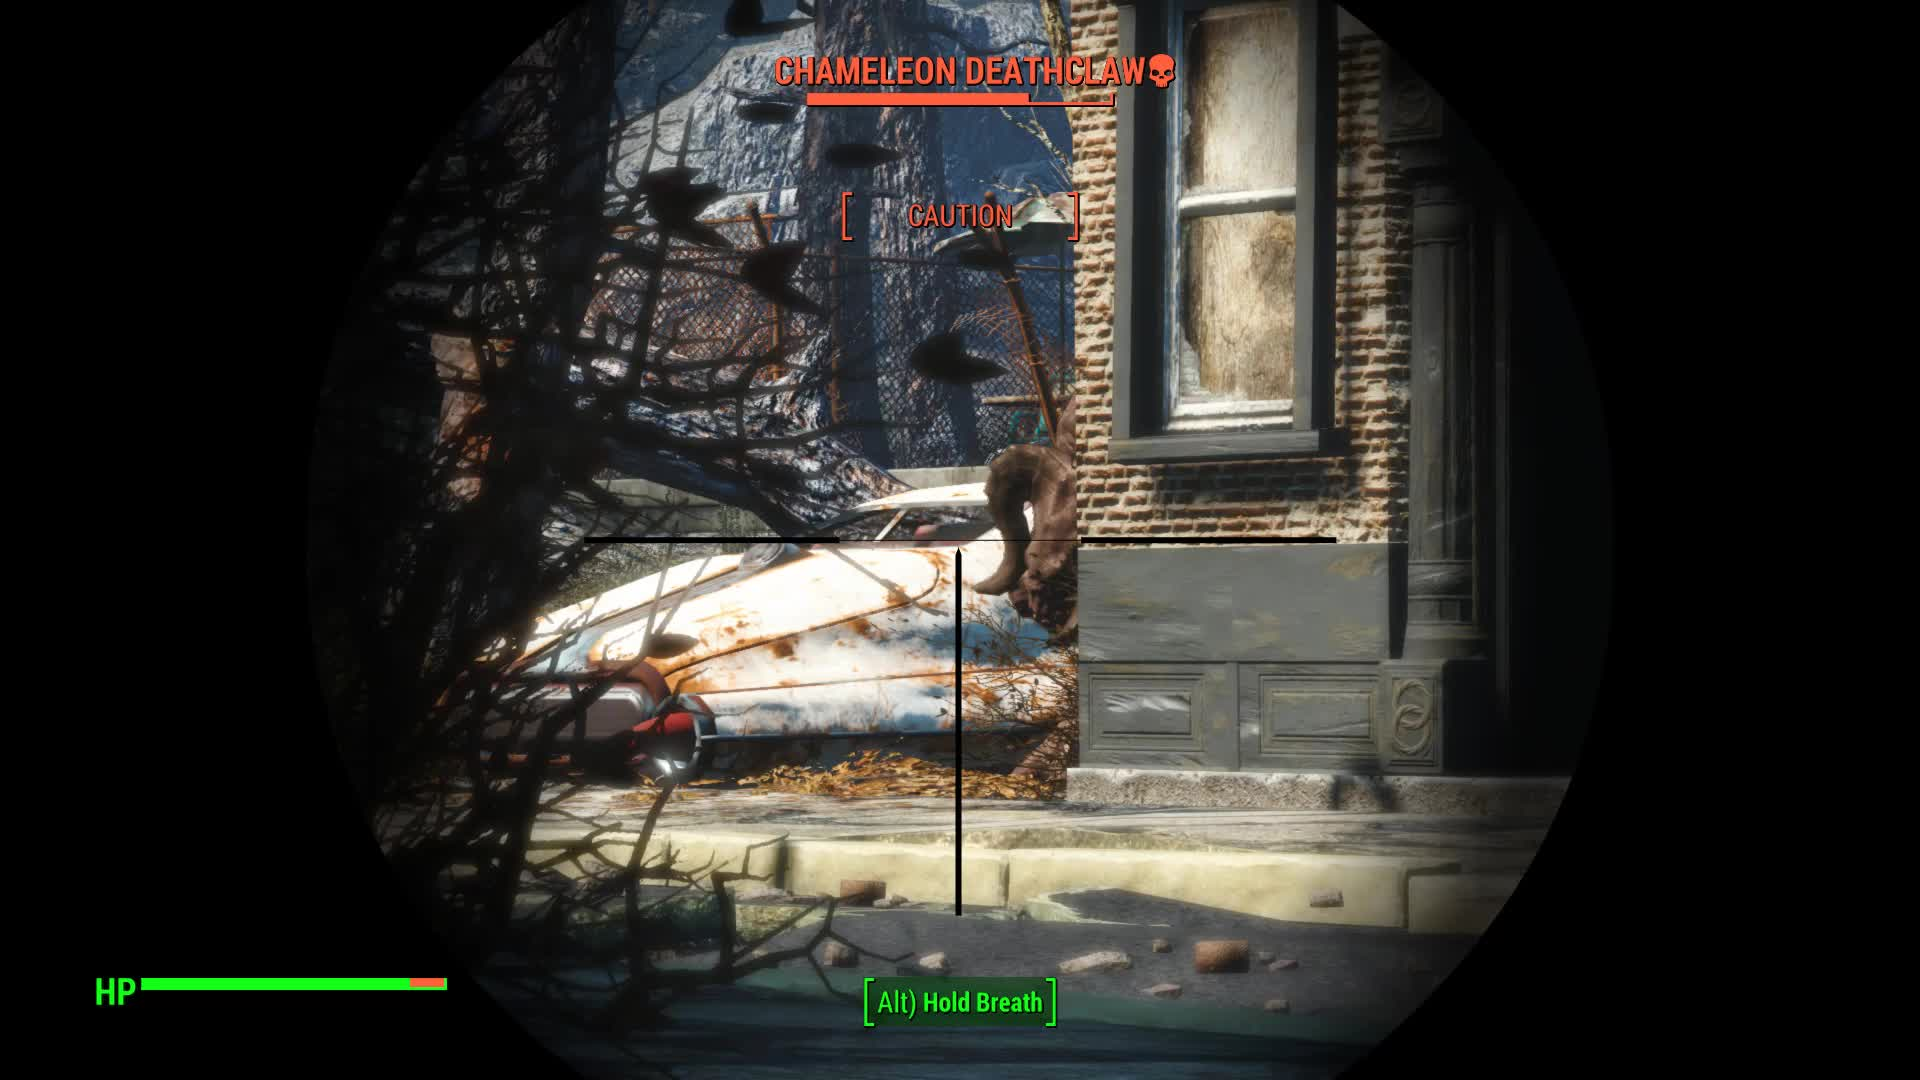 bethesda game studios, bethesda softworks, deathclaw, fallout, fallout 4, fallout 4 (2) GIFs